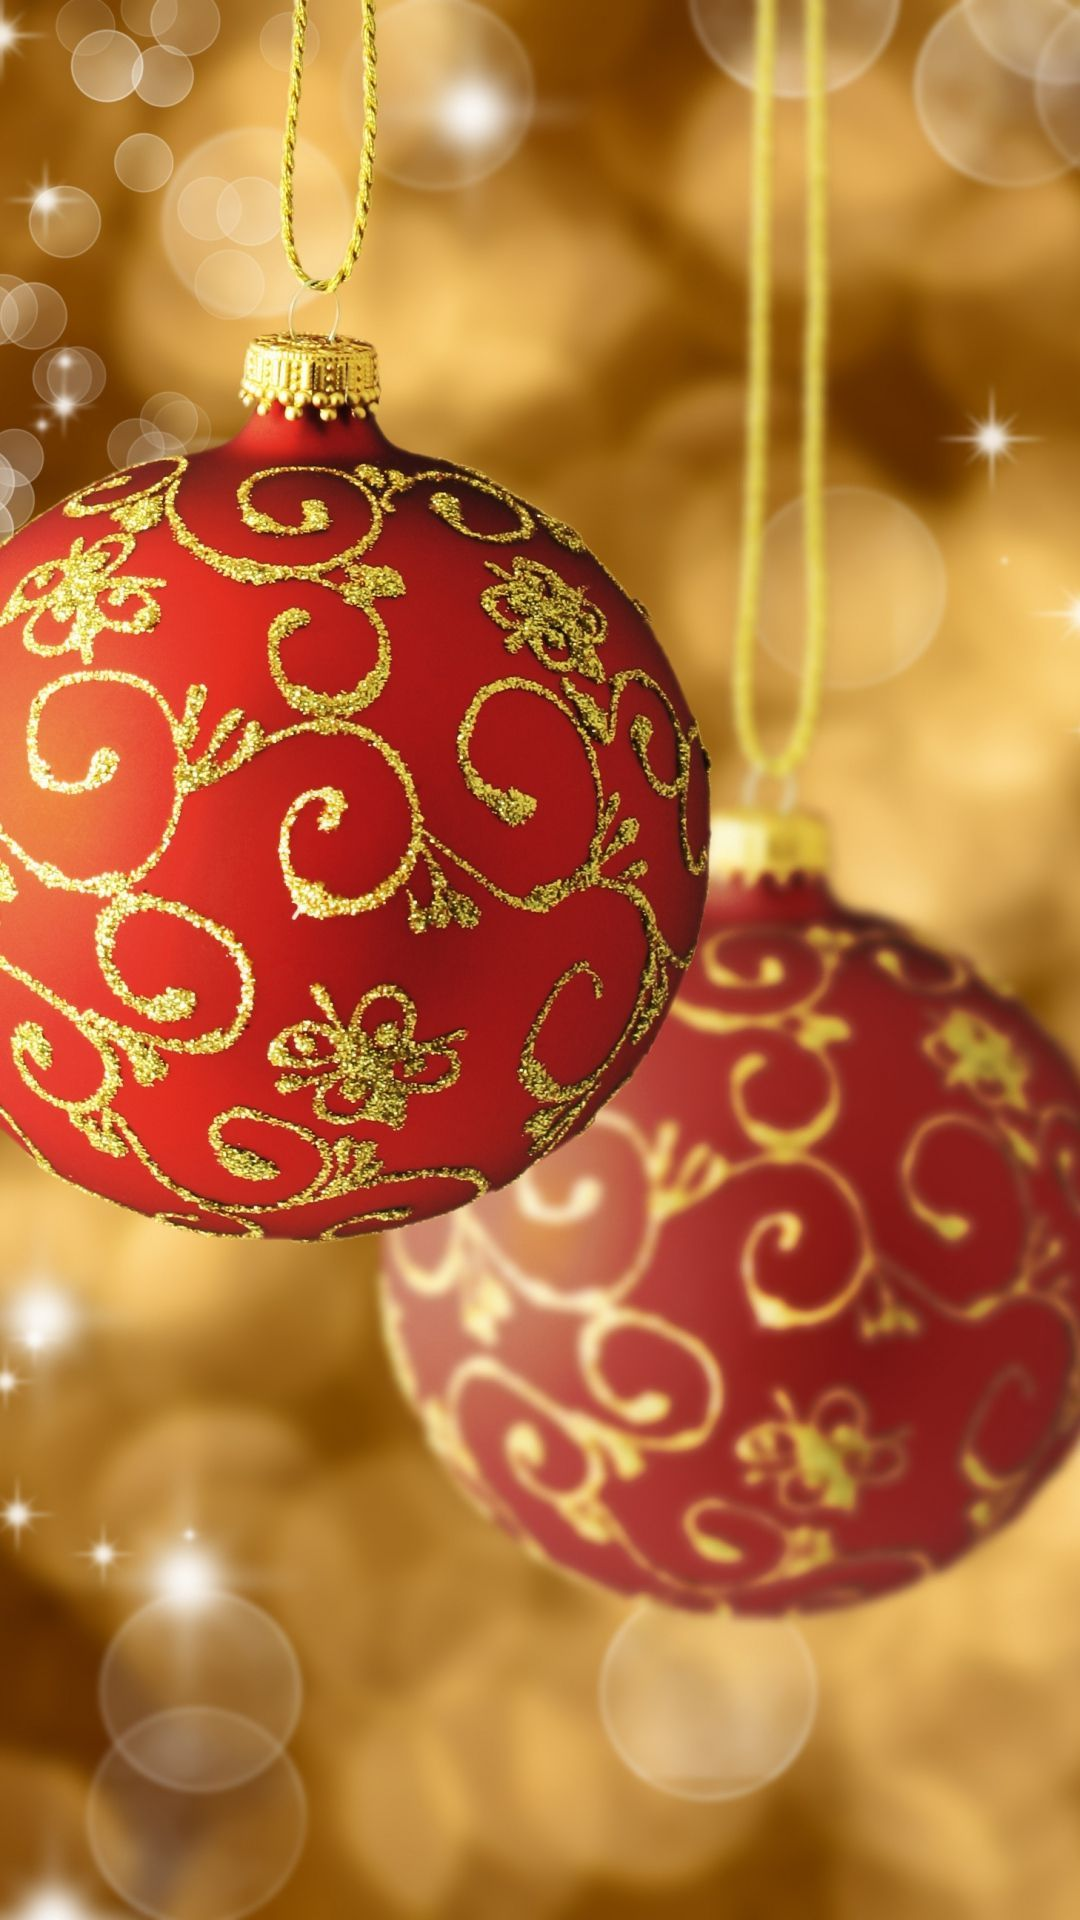 Red And Gold Christmas Wallpapers Top Free Red And Gold Christmas Backgrounds Wallpaperaccess